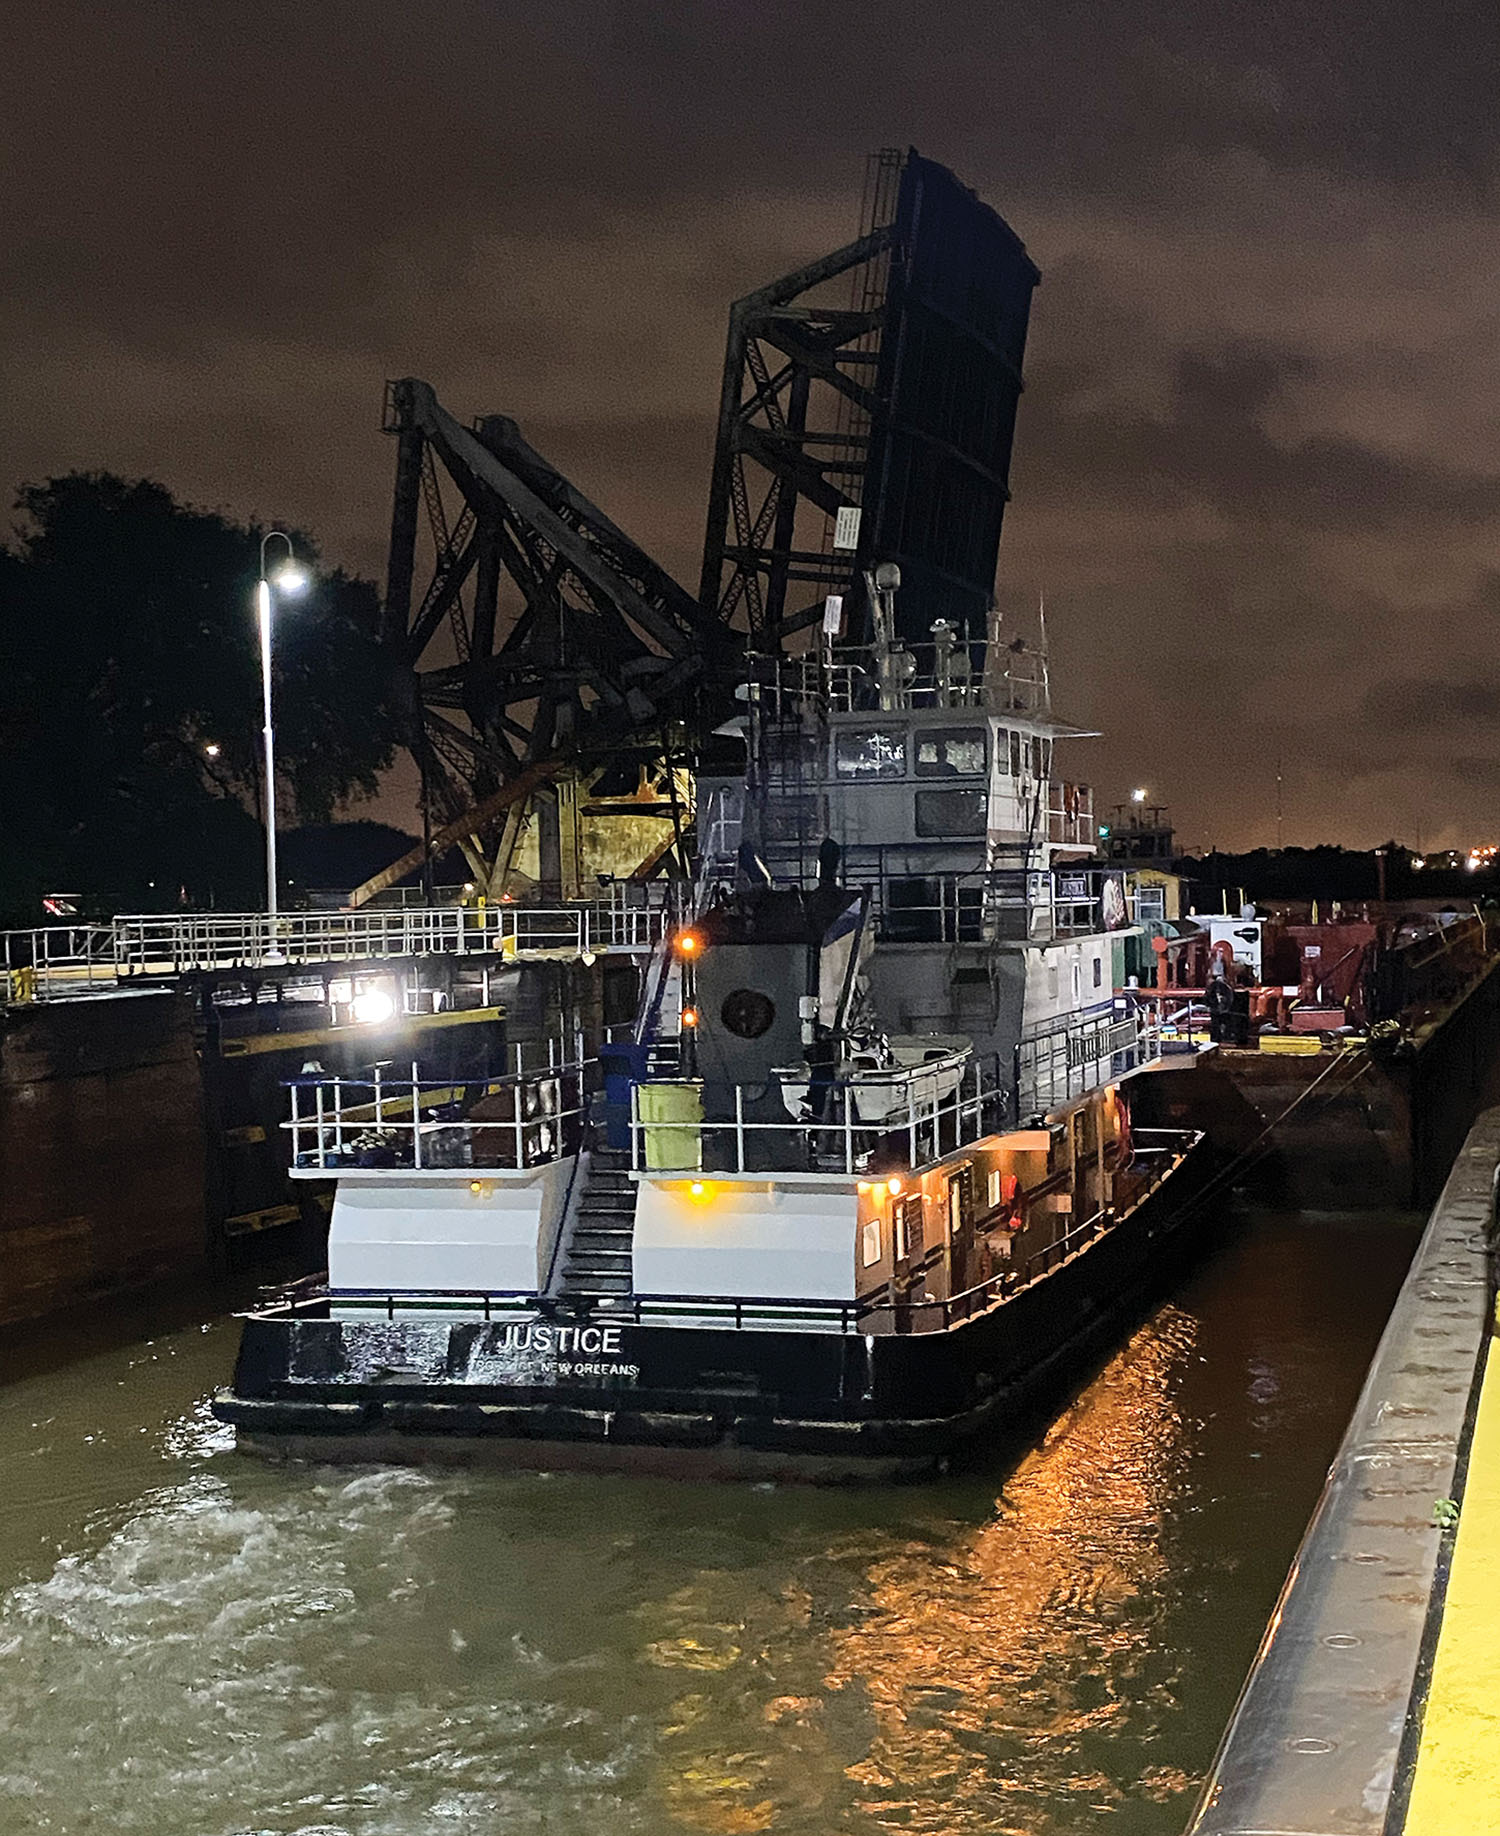 The mv. Justice was the first boat through the newly reopened IHNC Lock. (Photo courtesy of New Orleans Engineer District)